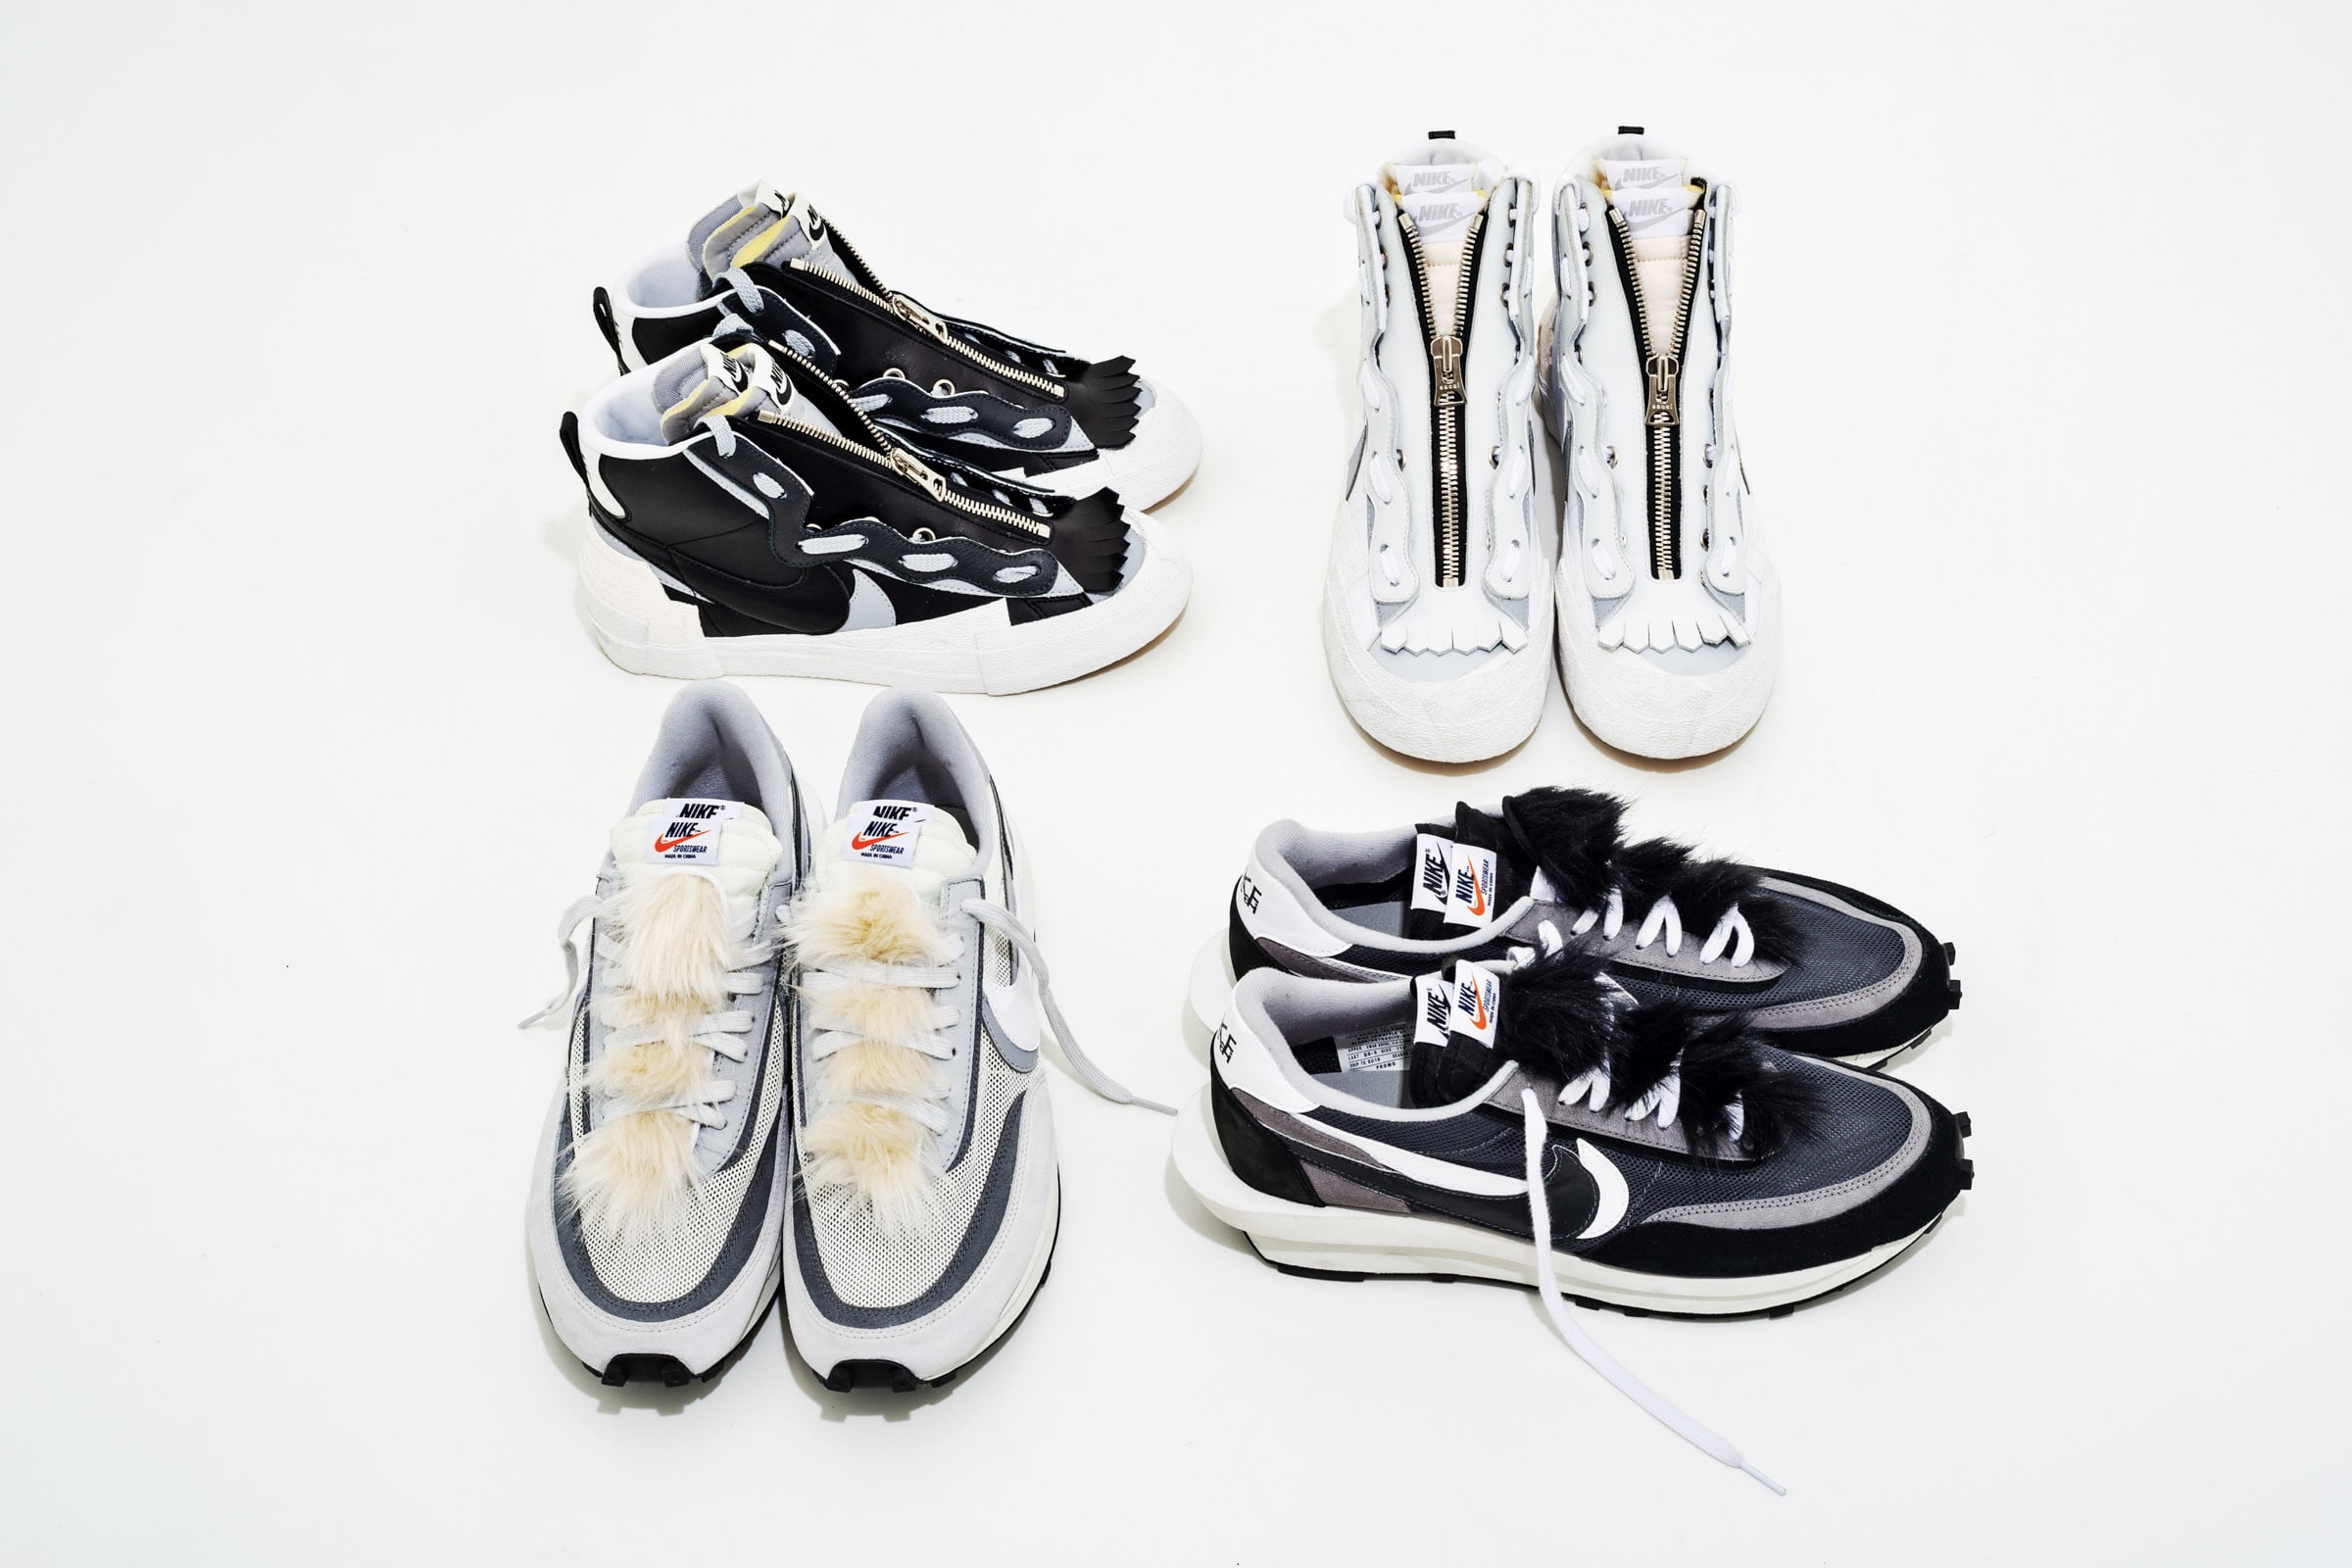 sacai-nike-ldv-waffle-new-colorways-release-20190912-20190919-accessory